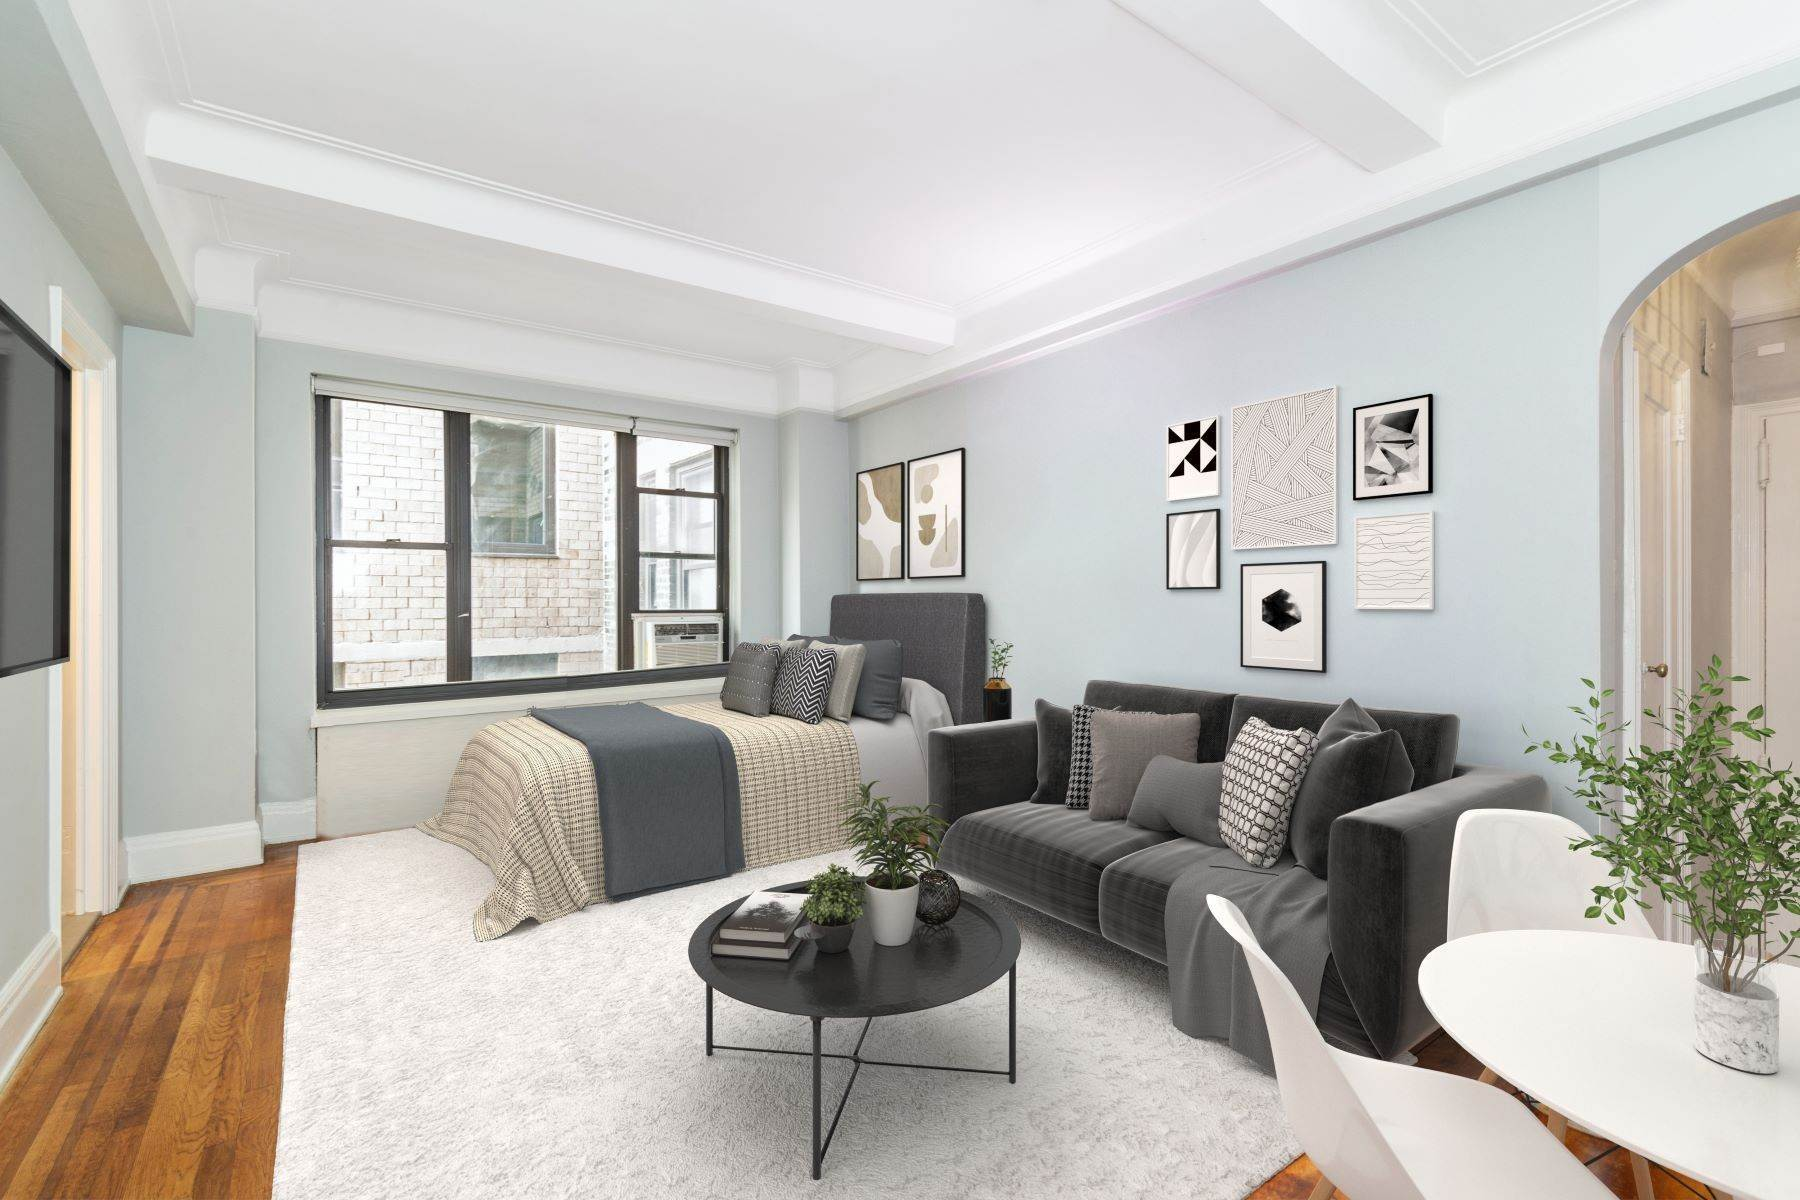 Co-op Properties for Sale at Park Avenue Perfect Studio 7 Park Avenue, Apt 12E New York, New York 10016 United States